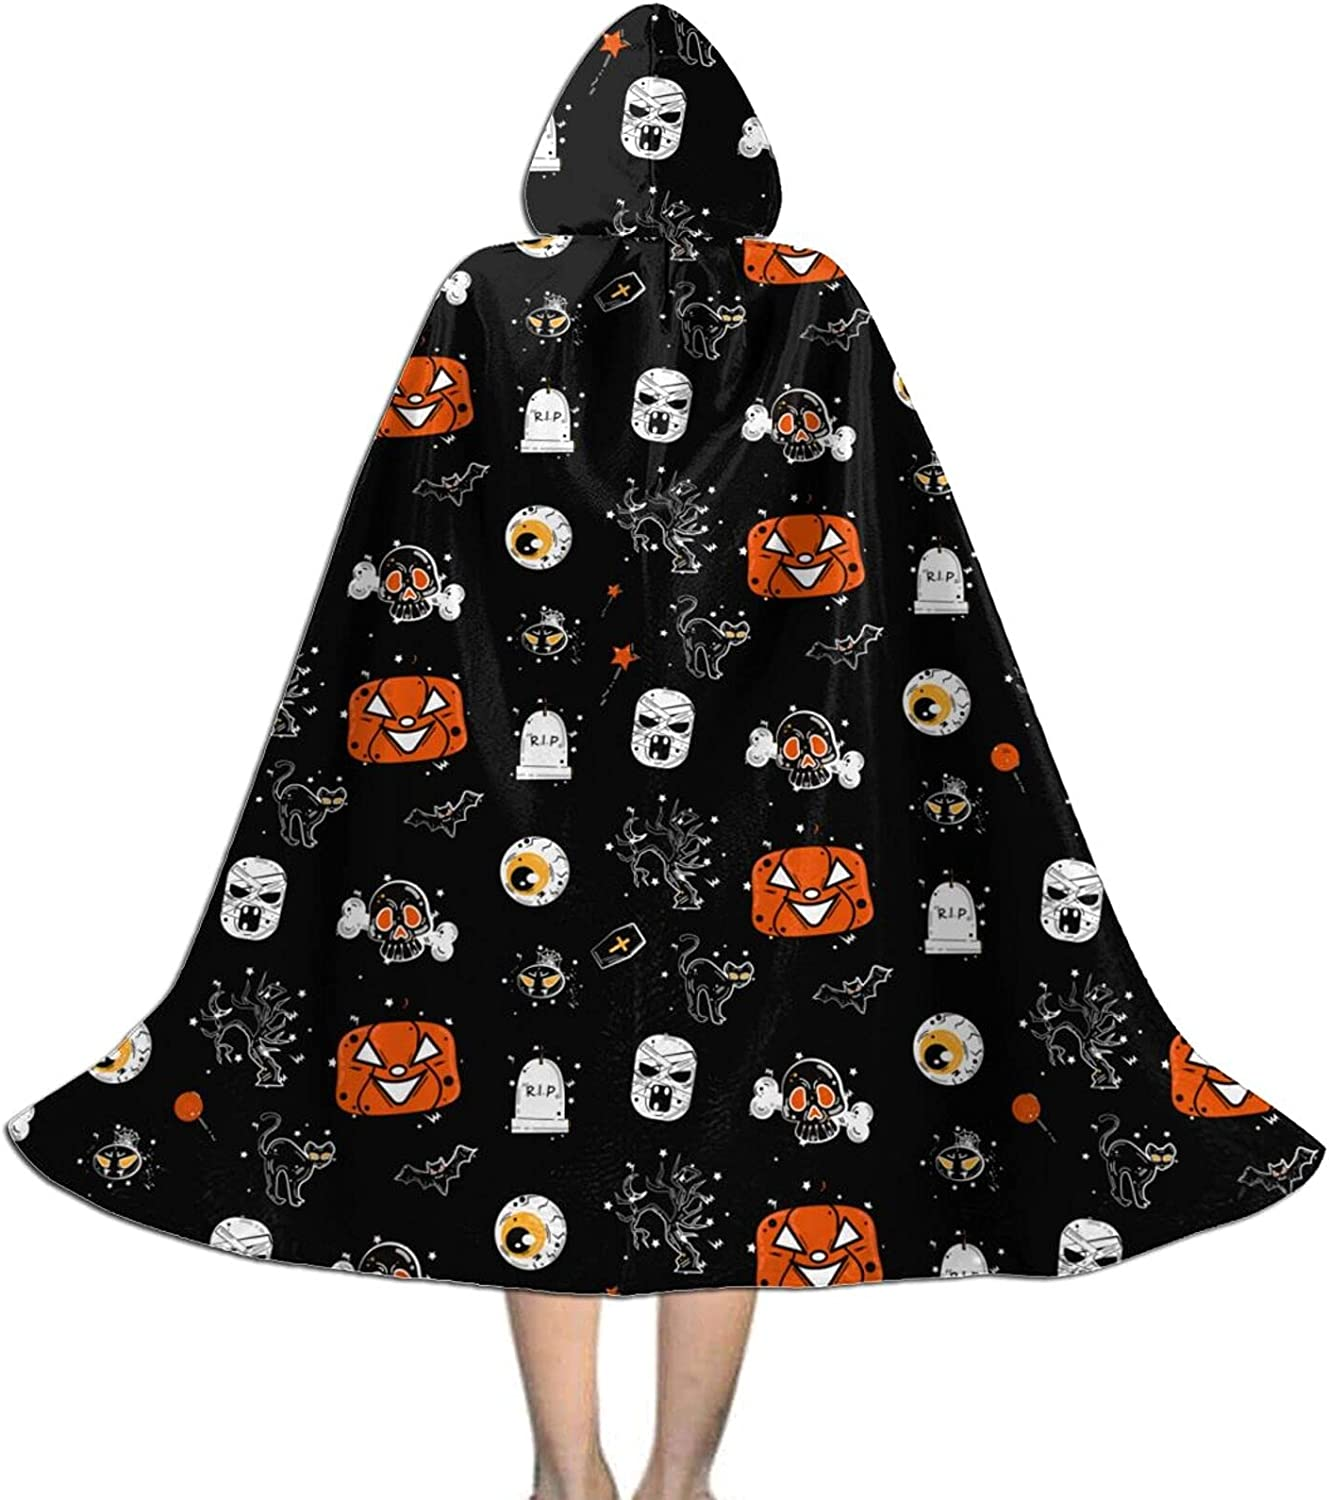 Custom Hooded Halloween Cloak discount For Cape Cap Personalized Max 40% OFF Kids